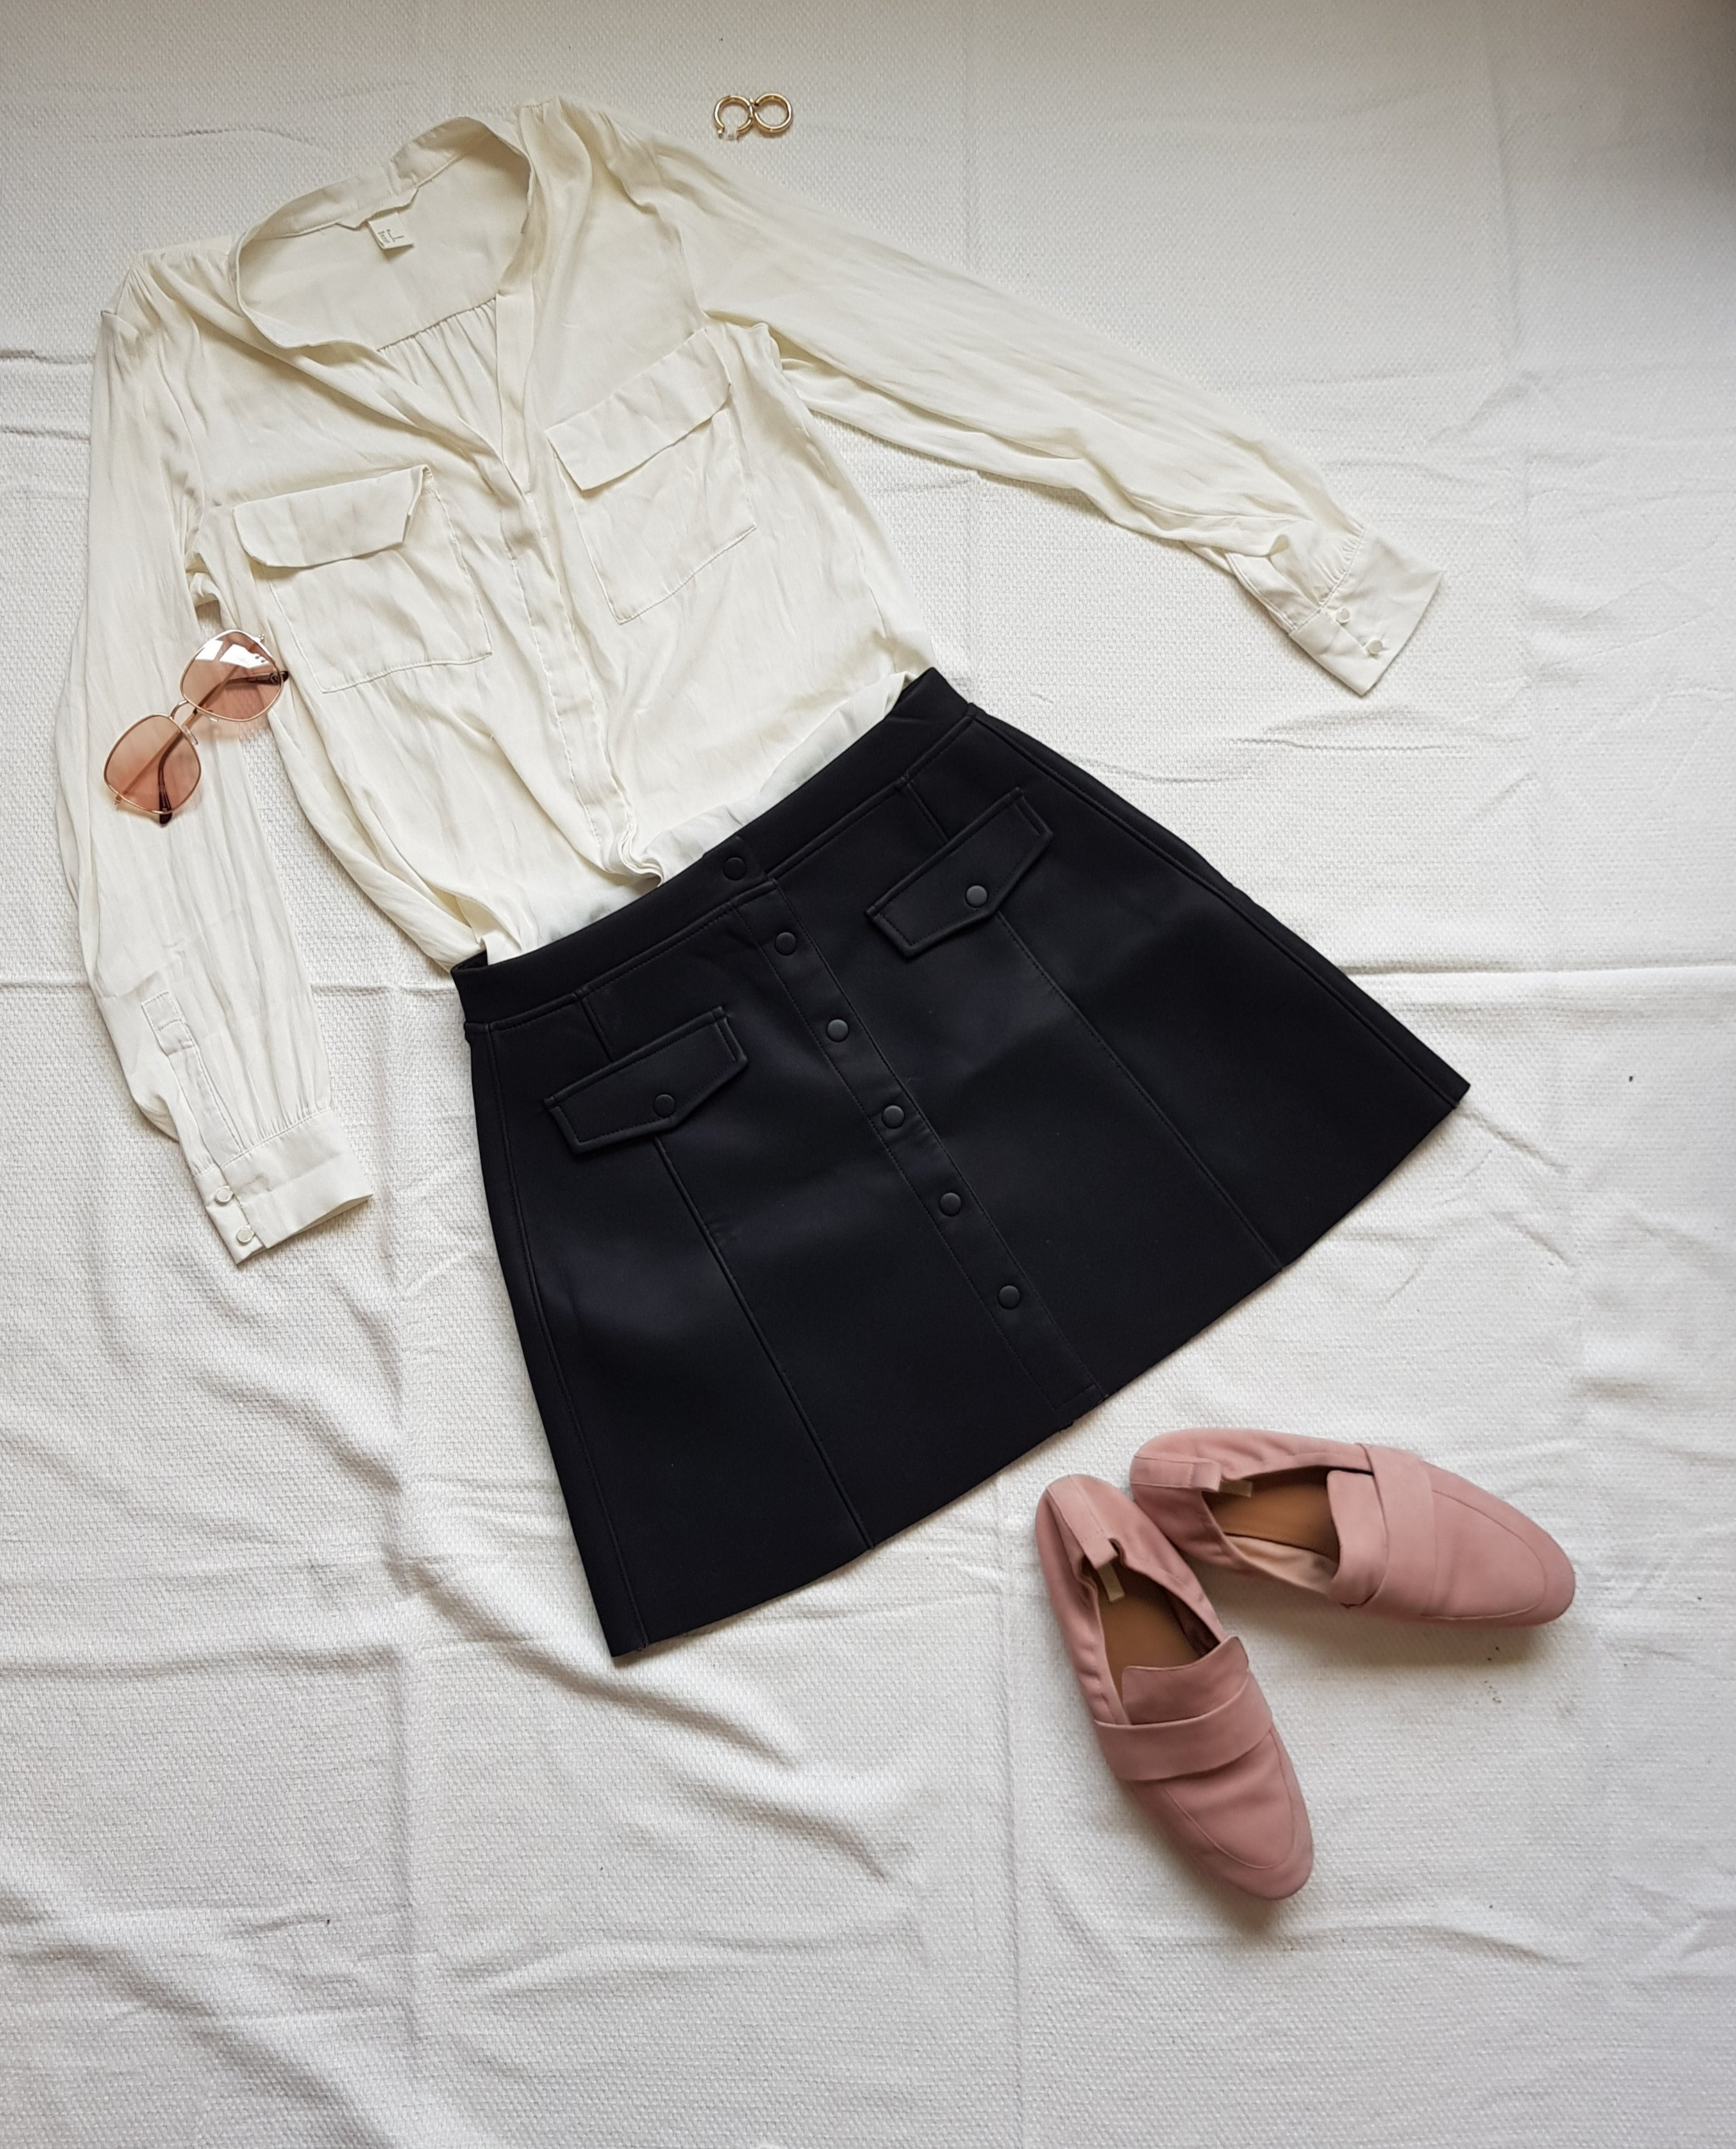 Simplicity Is Key - Blouse, skirt @H&MShoes, sunglasses @H&MEarrings @UrbanOutfitters